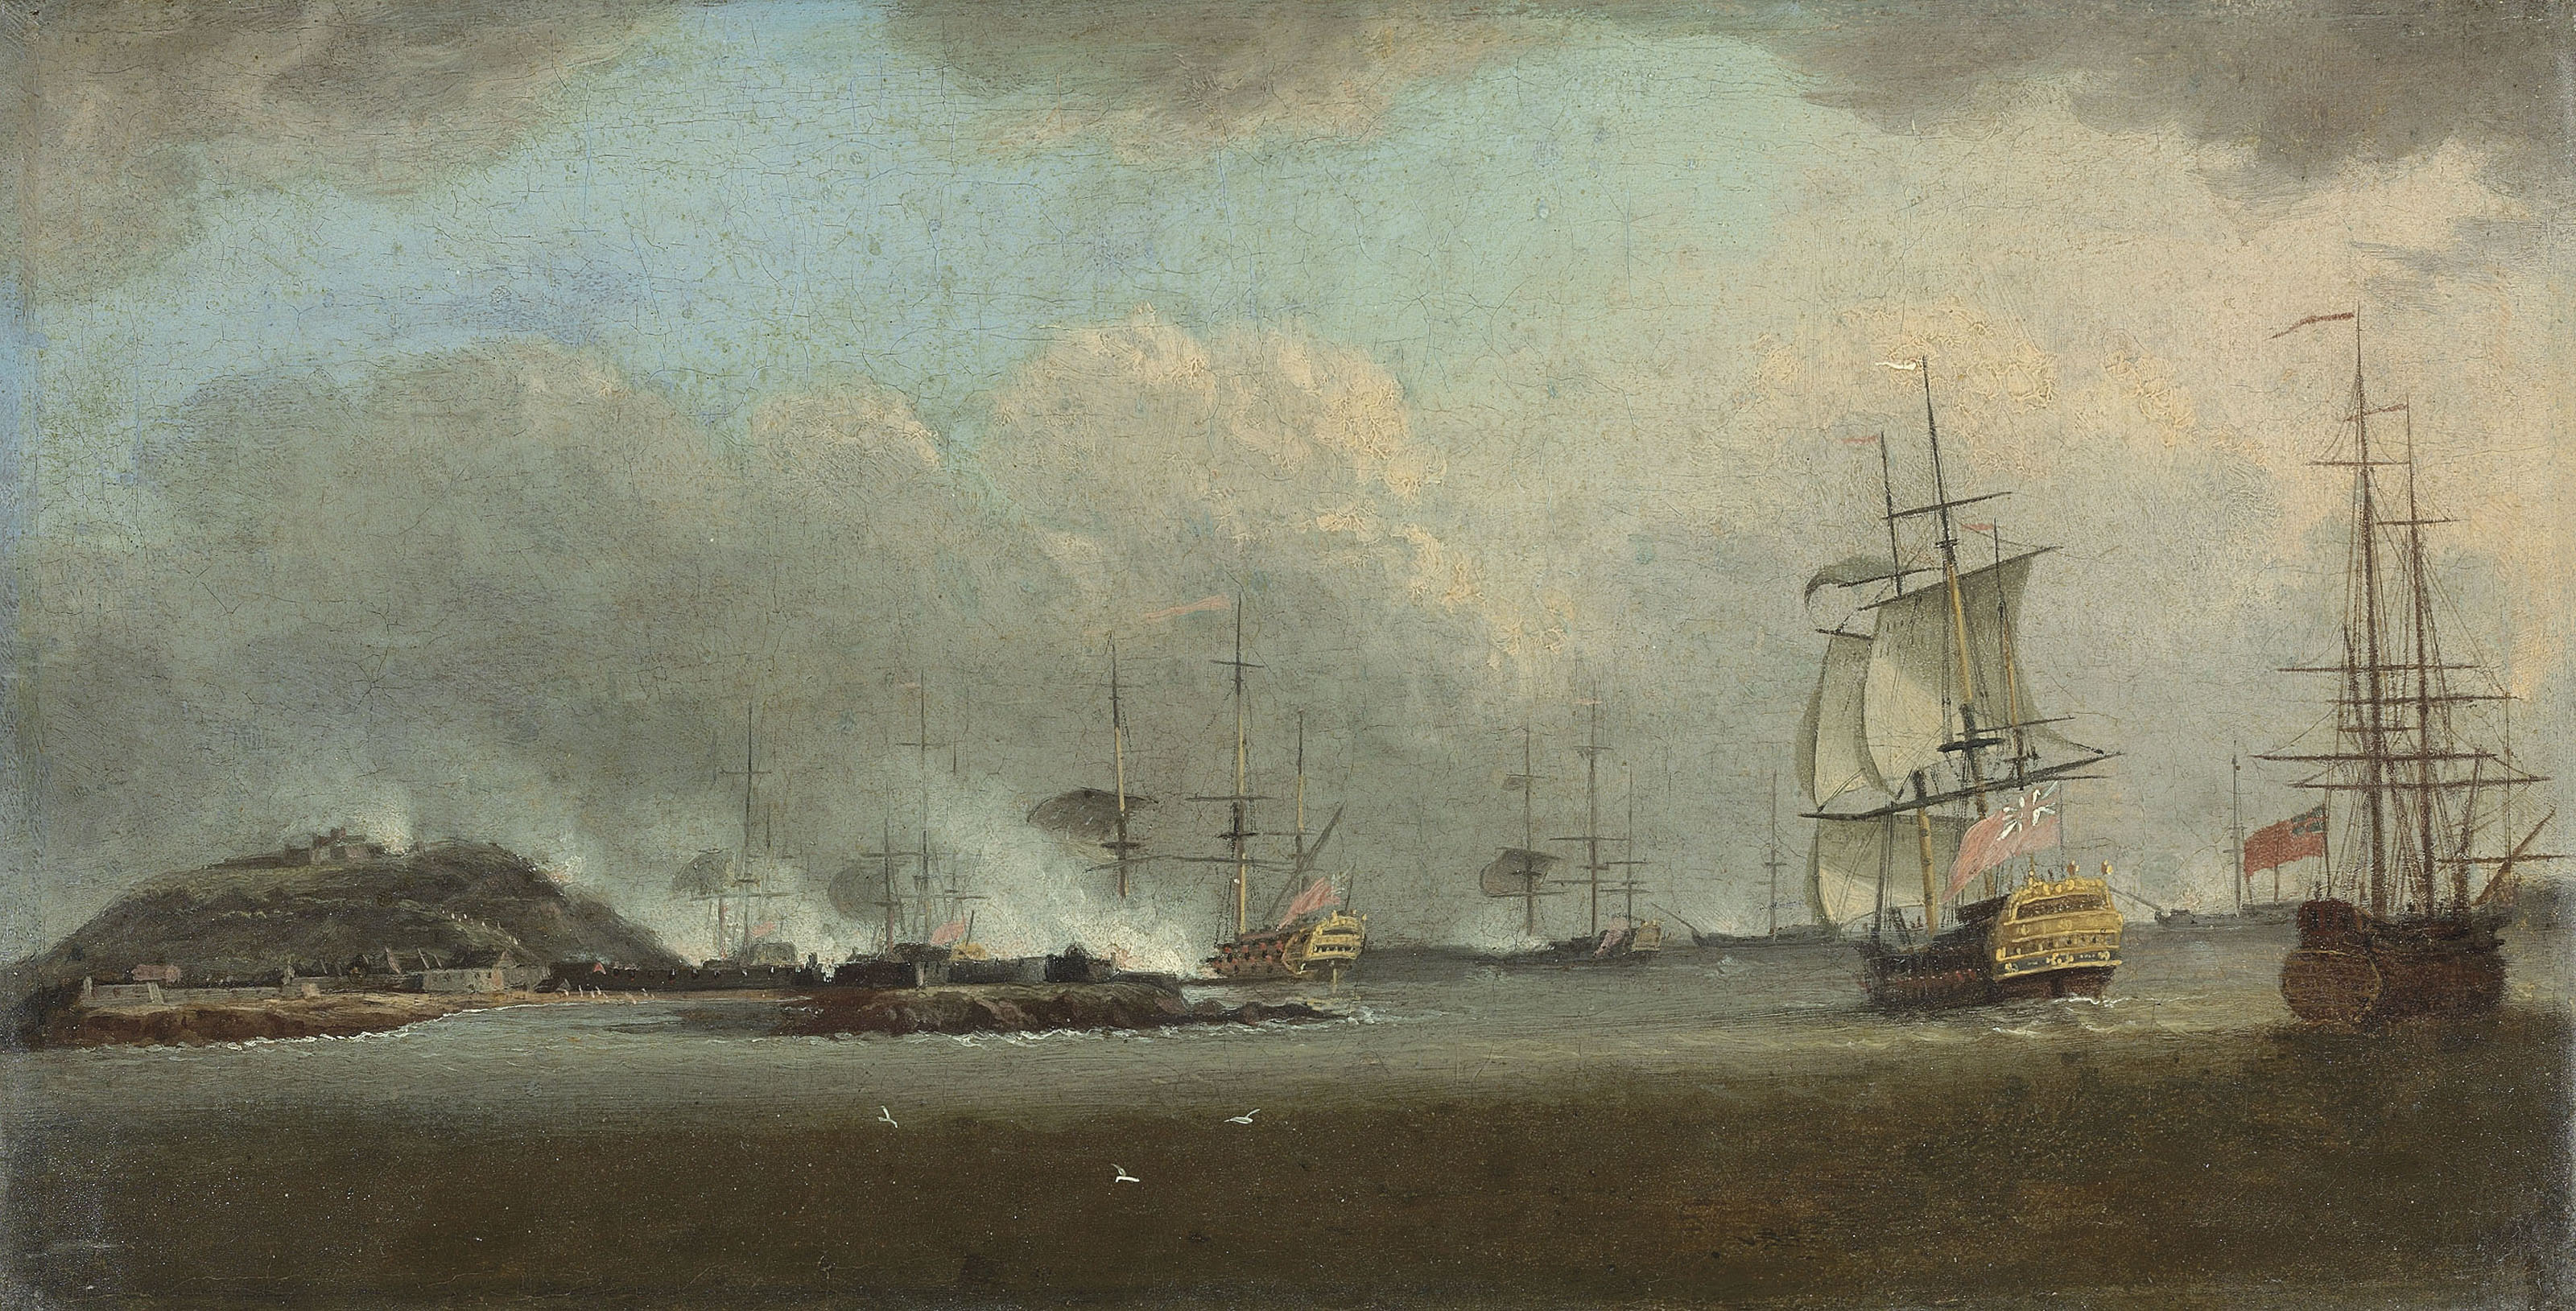 The attack on the island of Gorée, off the coast of Senegal, on 29 December 1758 under the command of Commodore The Honourable Augustus Keppel